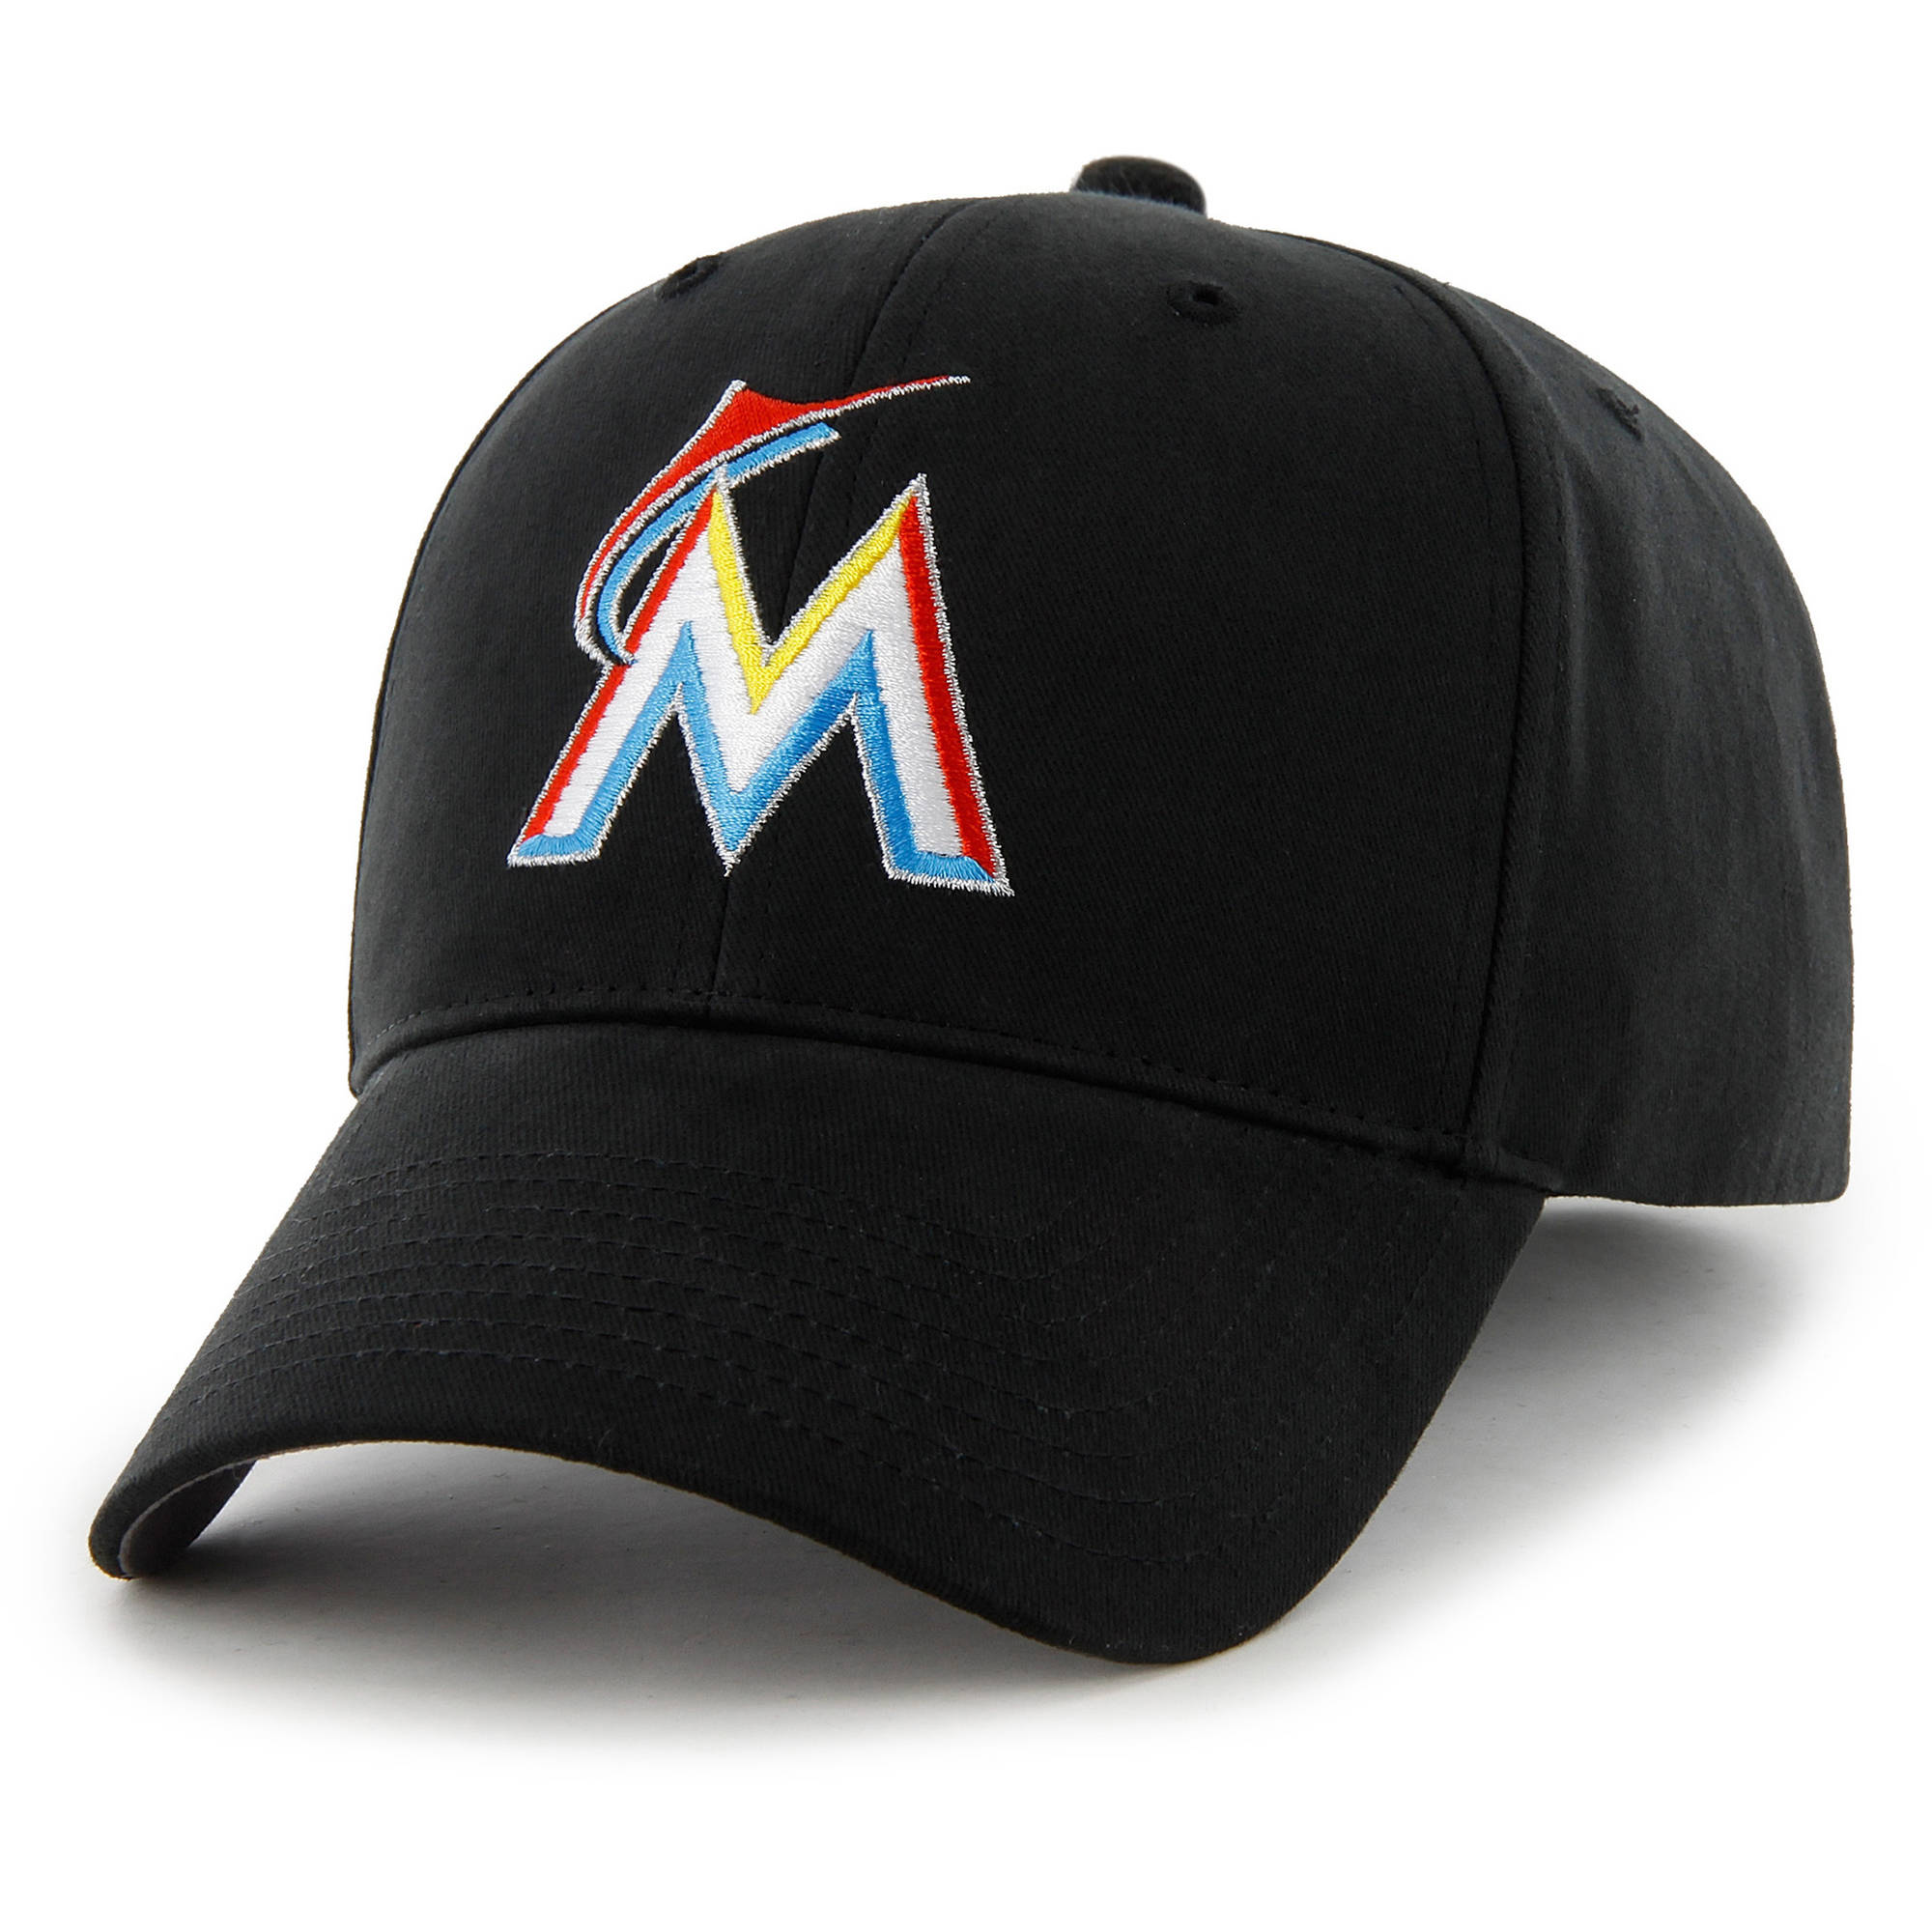 MLB Miami Marlins Basic Cap / Hat by Fan Favorite